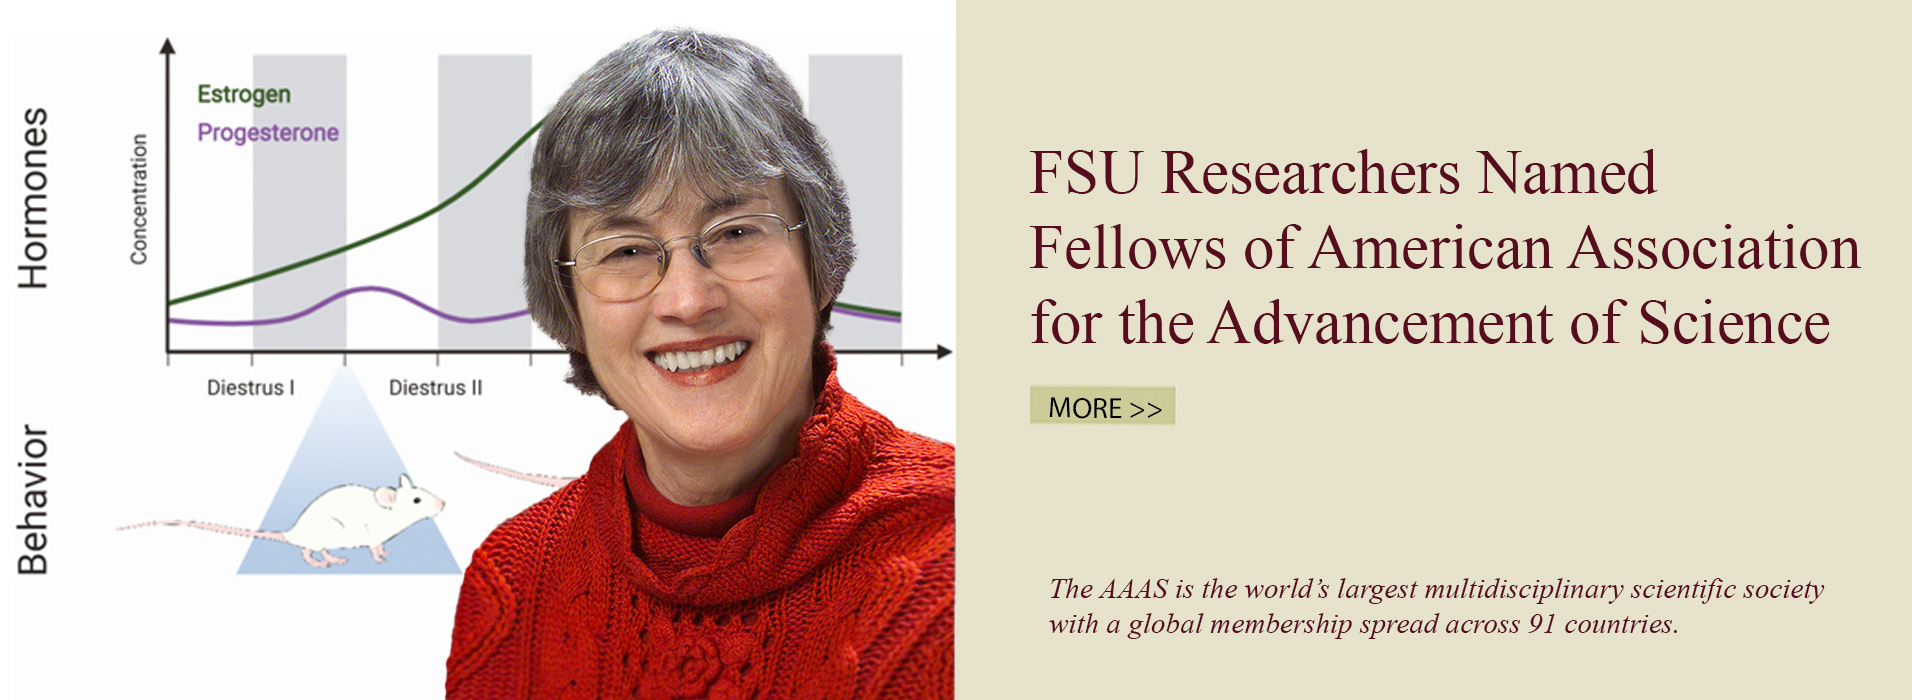 Researchers Named Fellows of American Association for the Advancement of Science